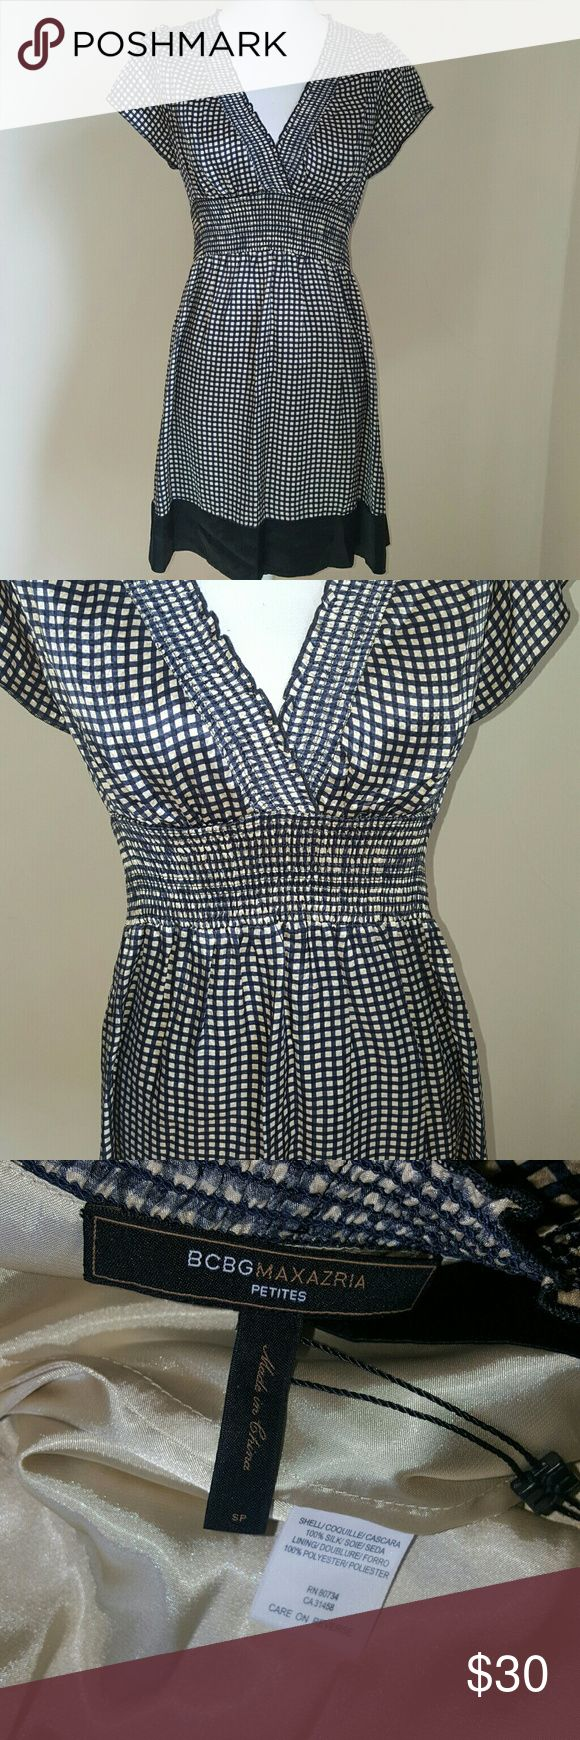 Selling this ⬇️BCBGMaxAzria Silk Checkered Dress on Poshmark! My username is: amichellev. #shopmycloset #poshmark #fashion #shopping #style #forsale #BCBGMaxAzria #Dresses & Skirts